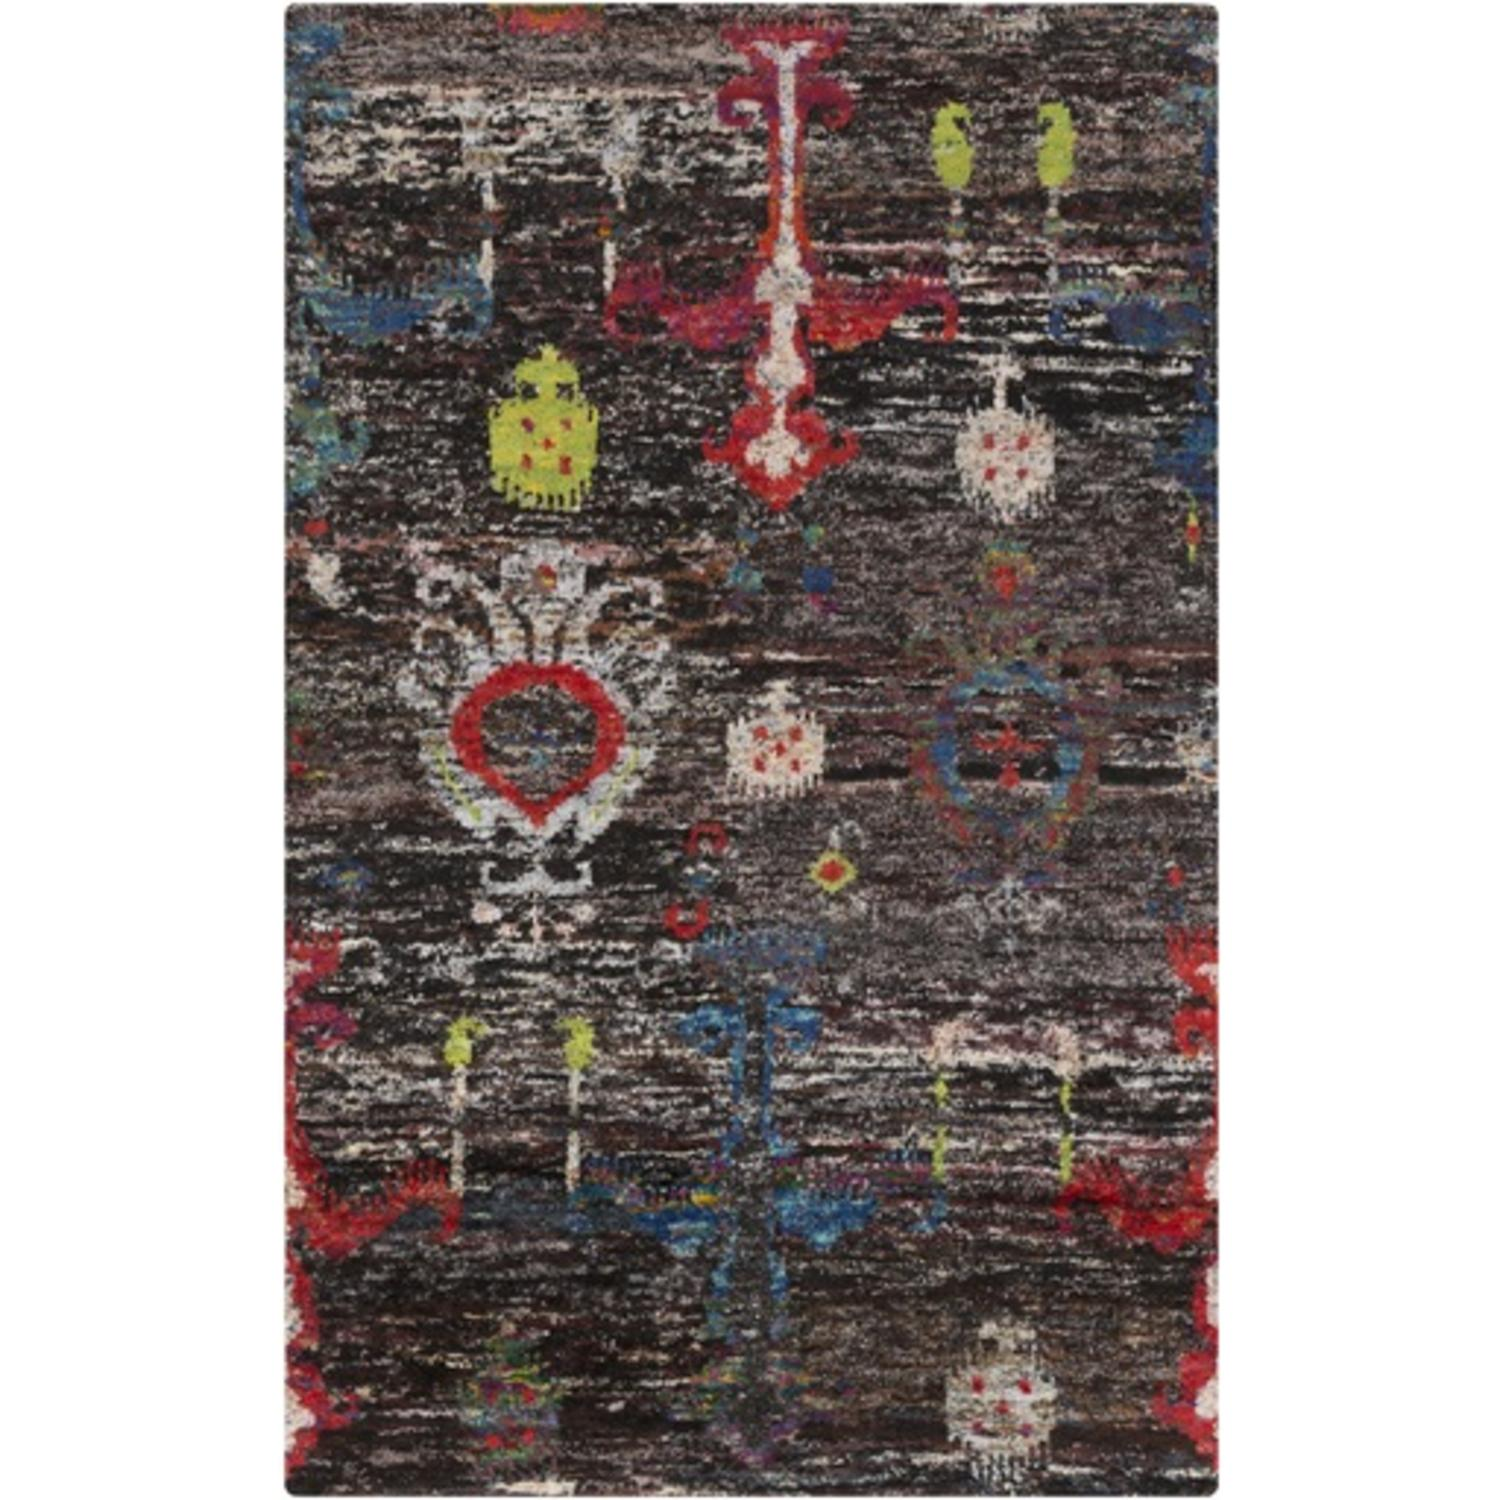 2' x 3' Turkish Bazaar Black, Burgundy and Cobalt Blue Hand Knotted Area Throw Rug